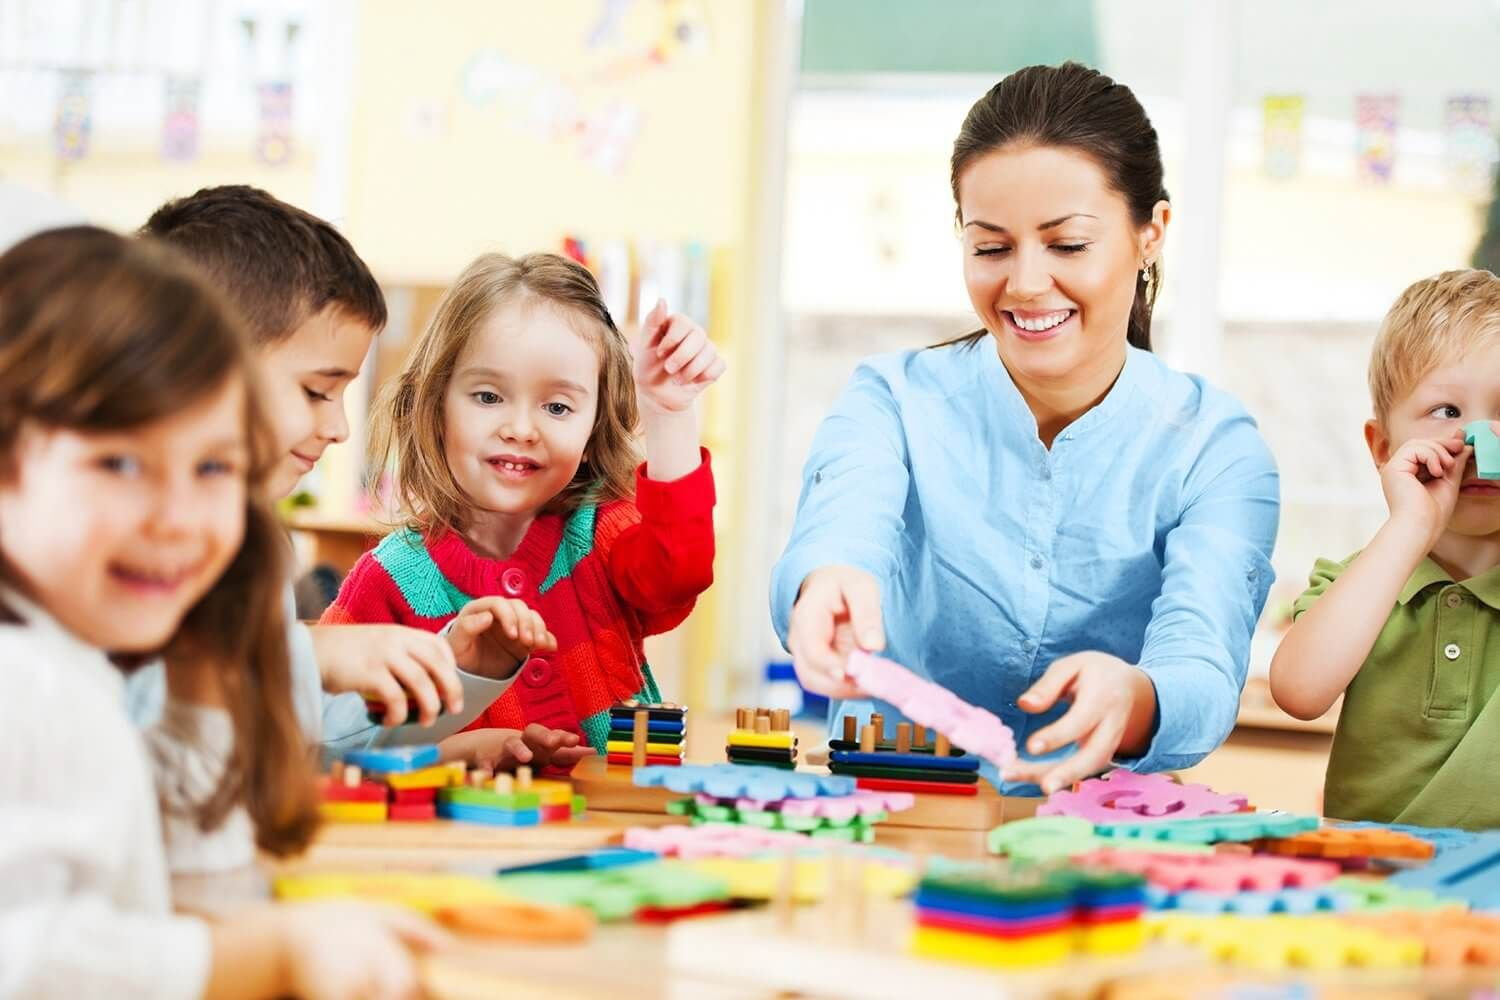 Why Study Early Childhood Education Technician?